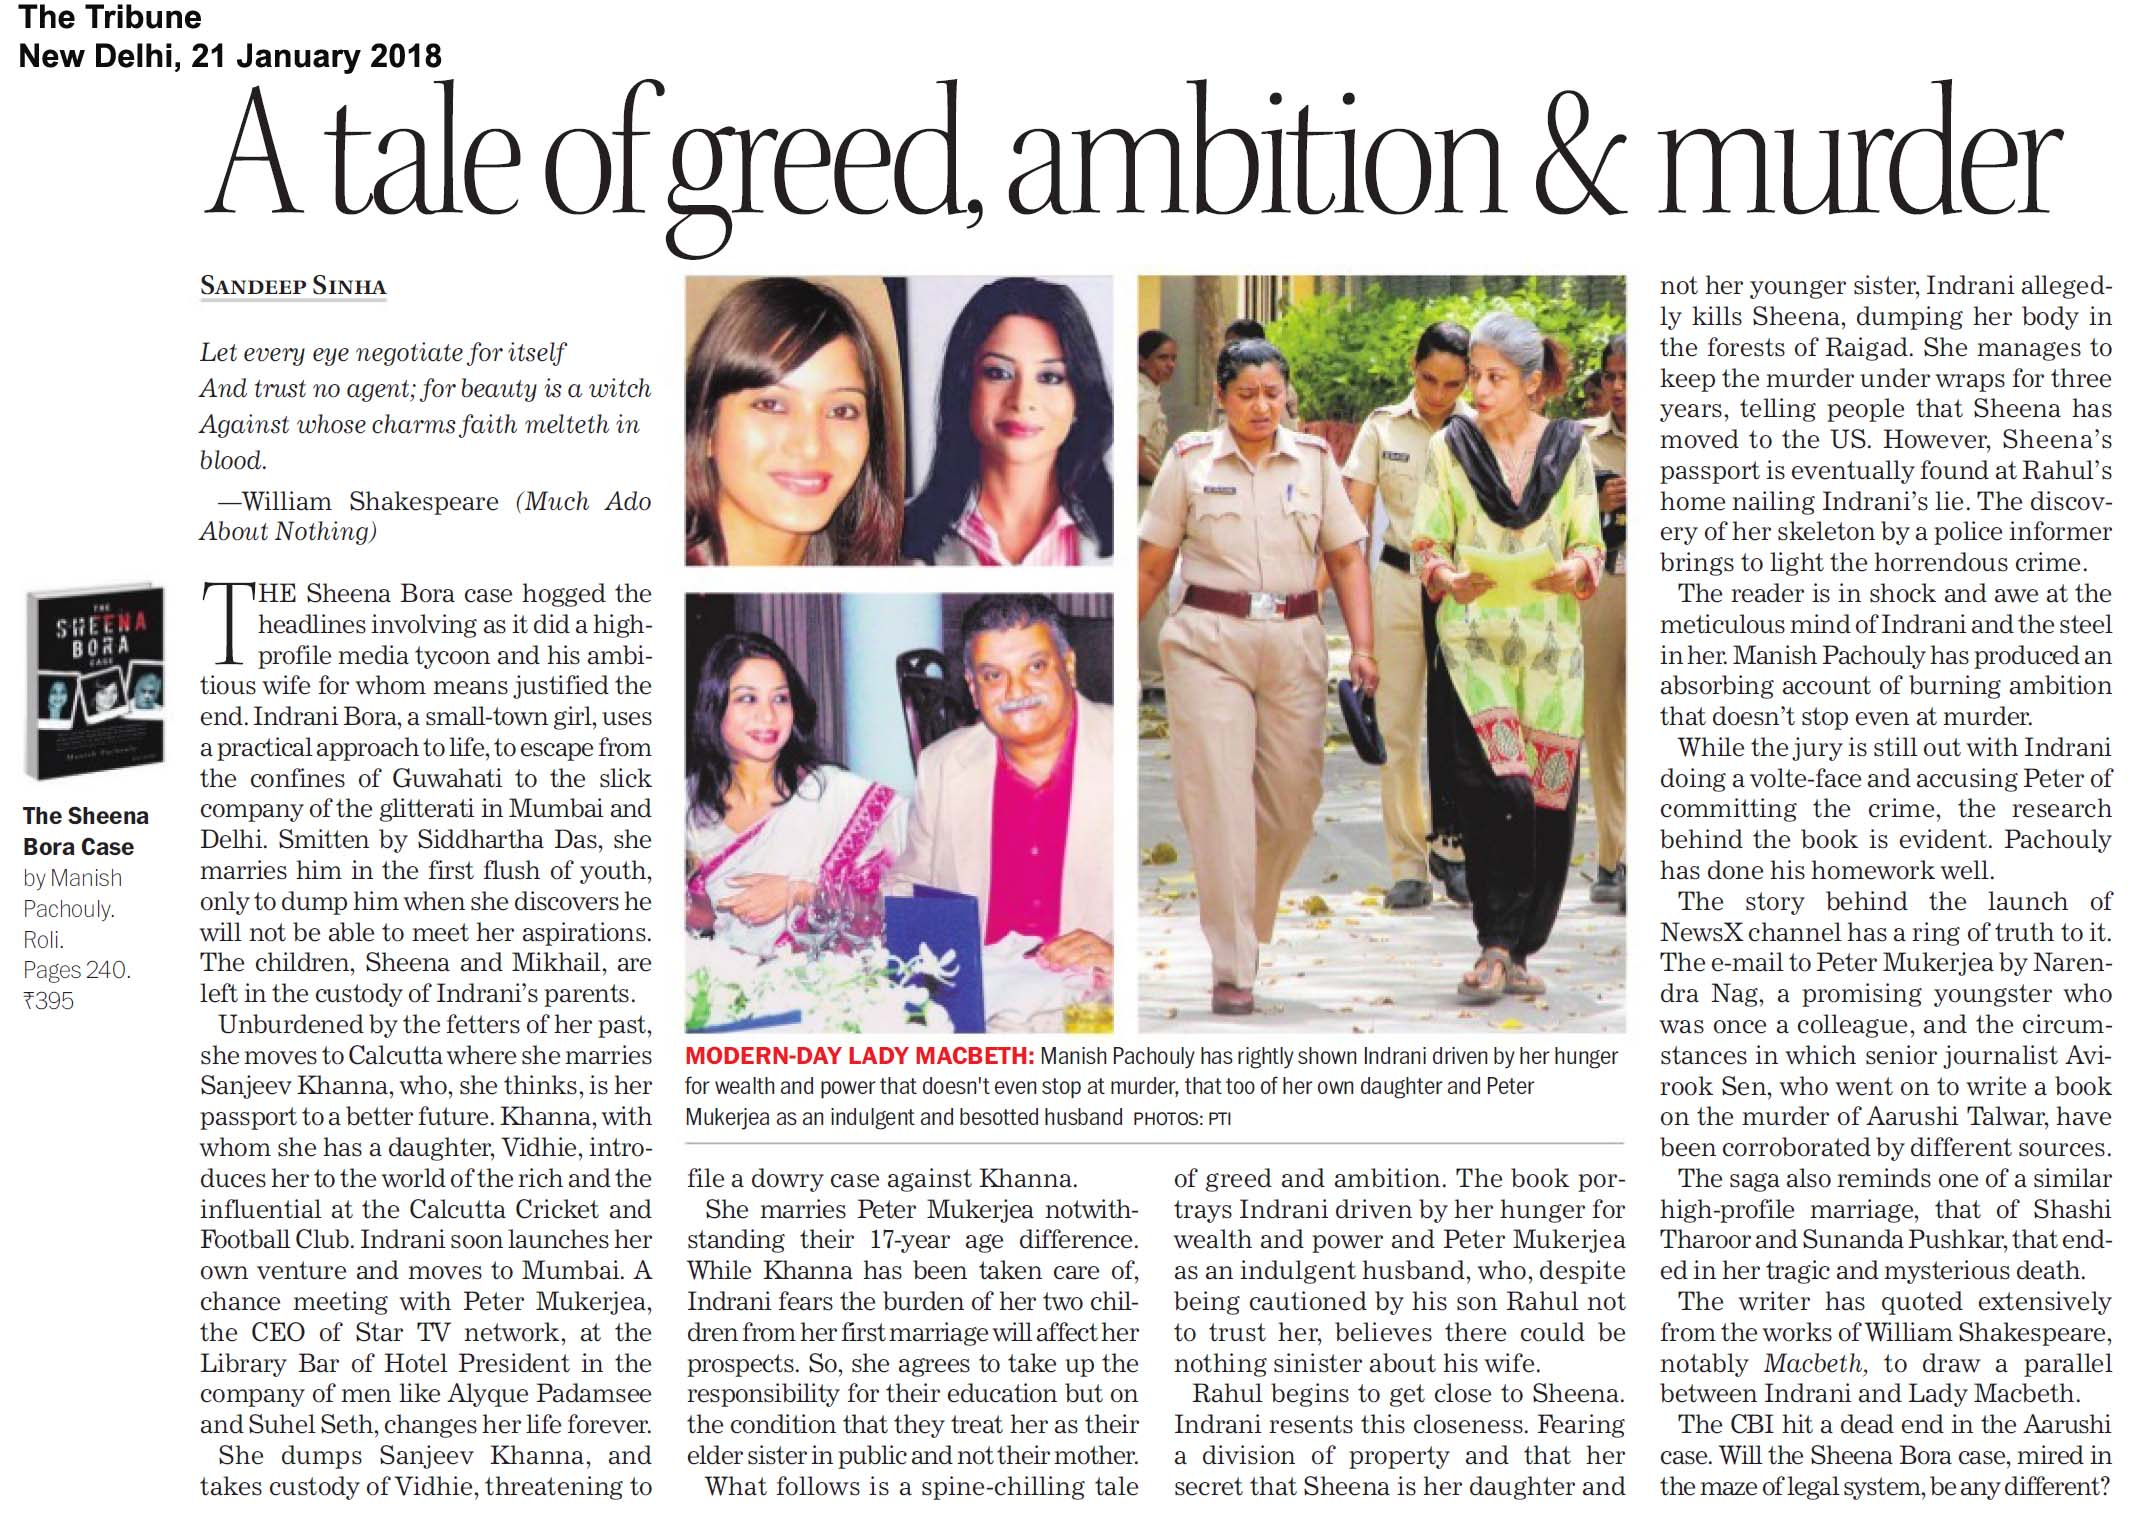 The Sheena Bora Case<br><span>The Tribune, New Delhi</span>